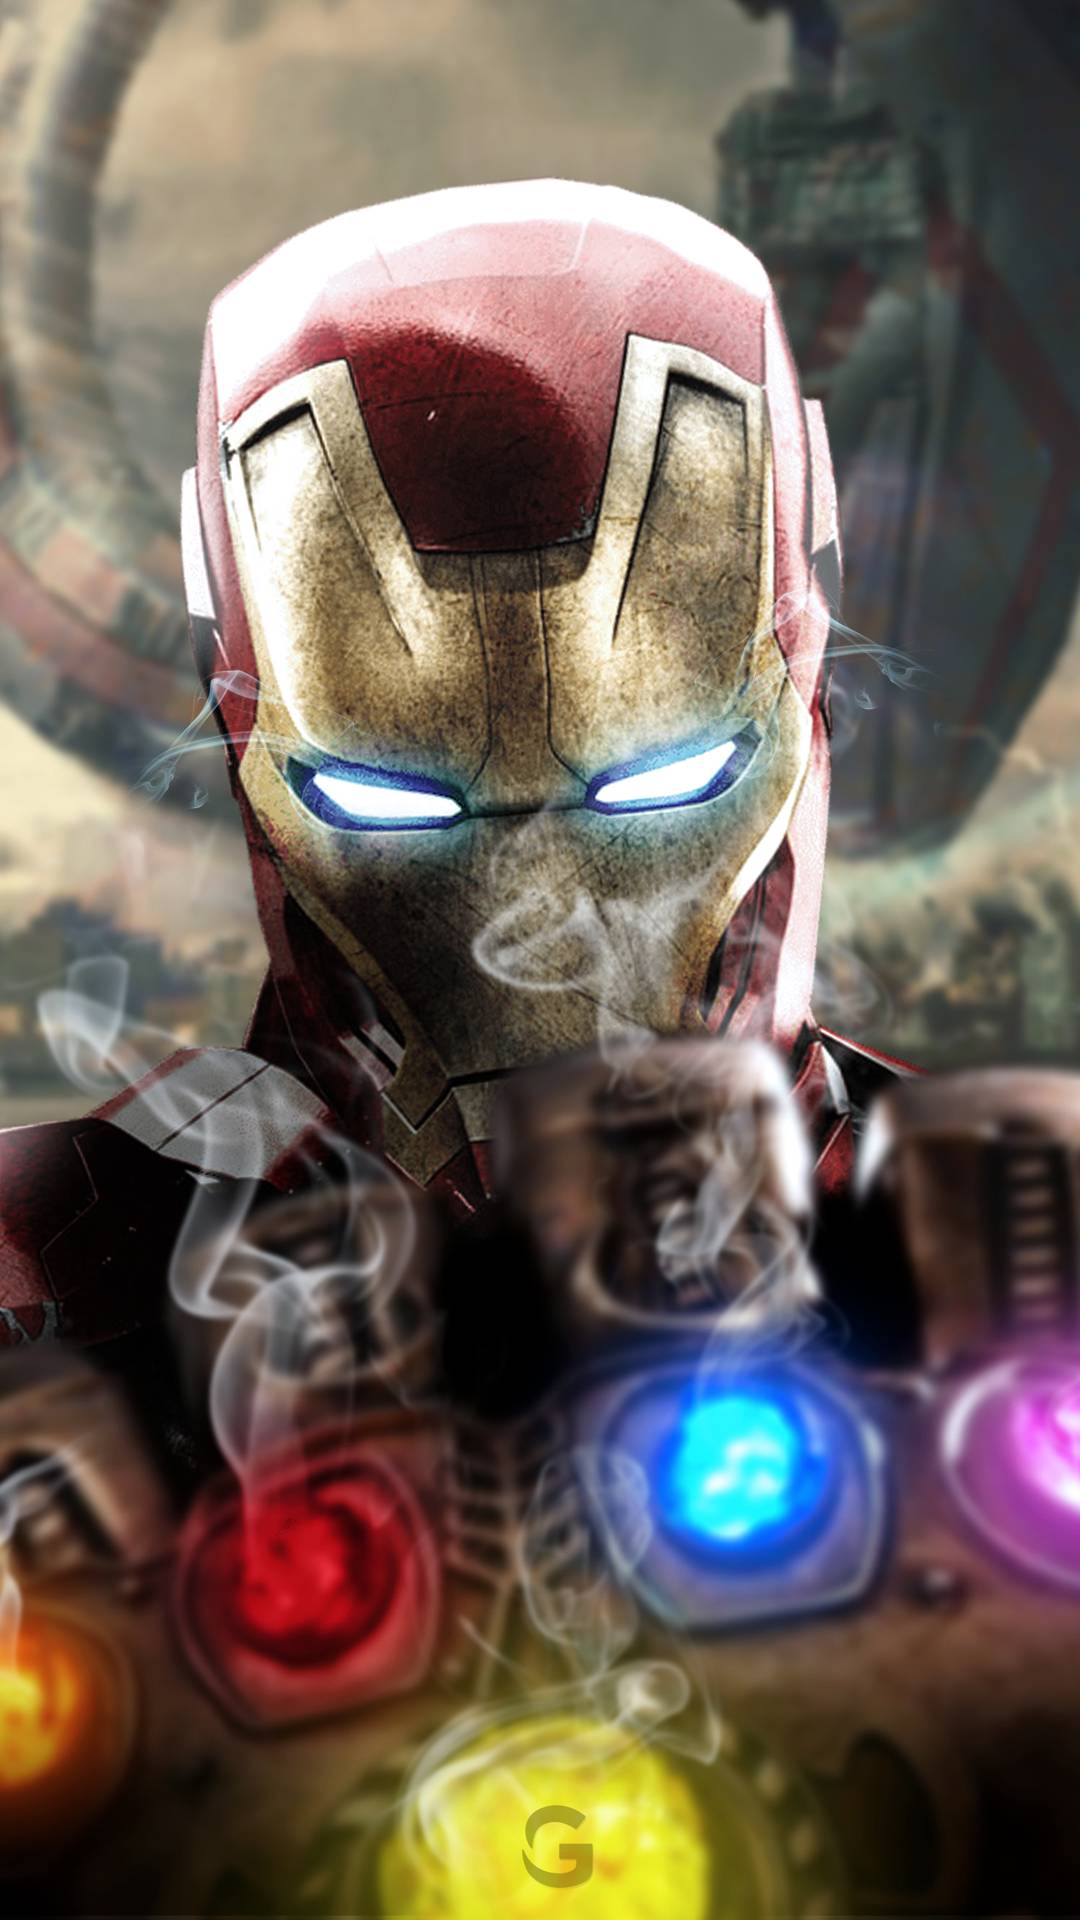 Arc Reactor Wallpaper Iphone Iron Man Vs Infinity Stones Iphone Wallpaper Iphone